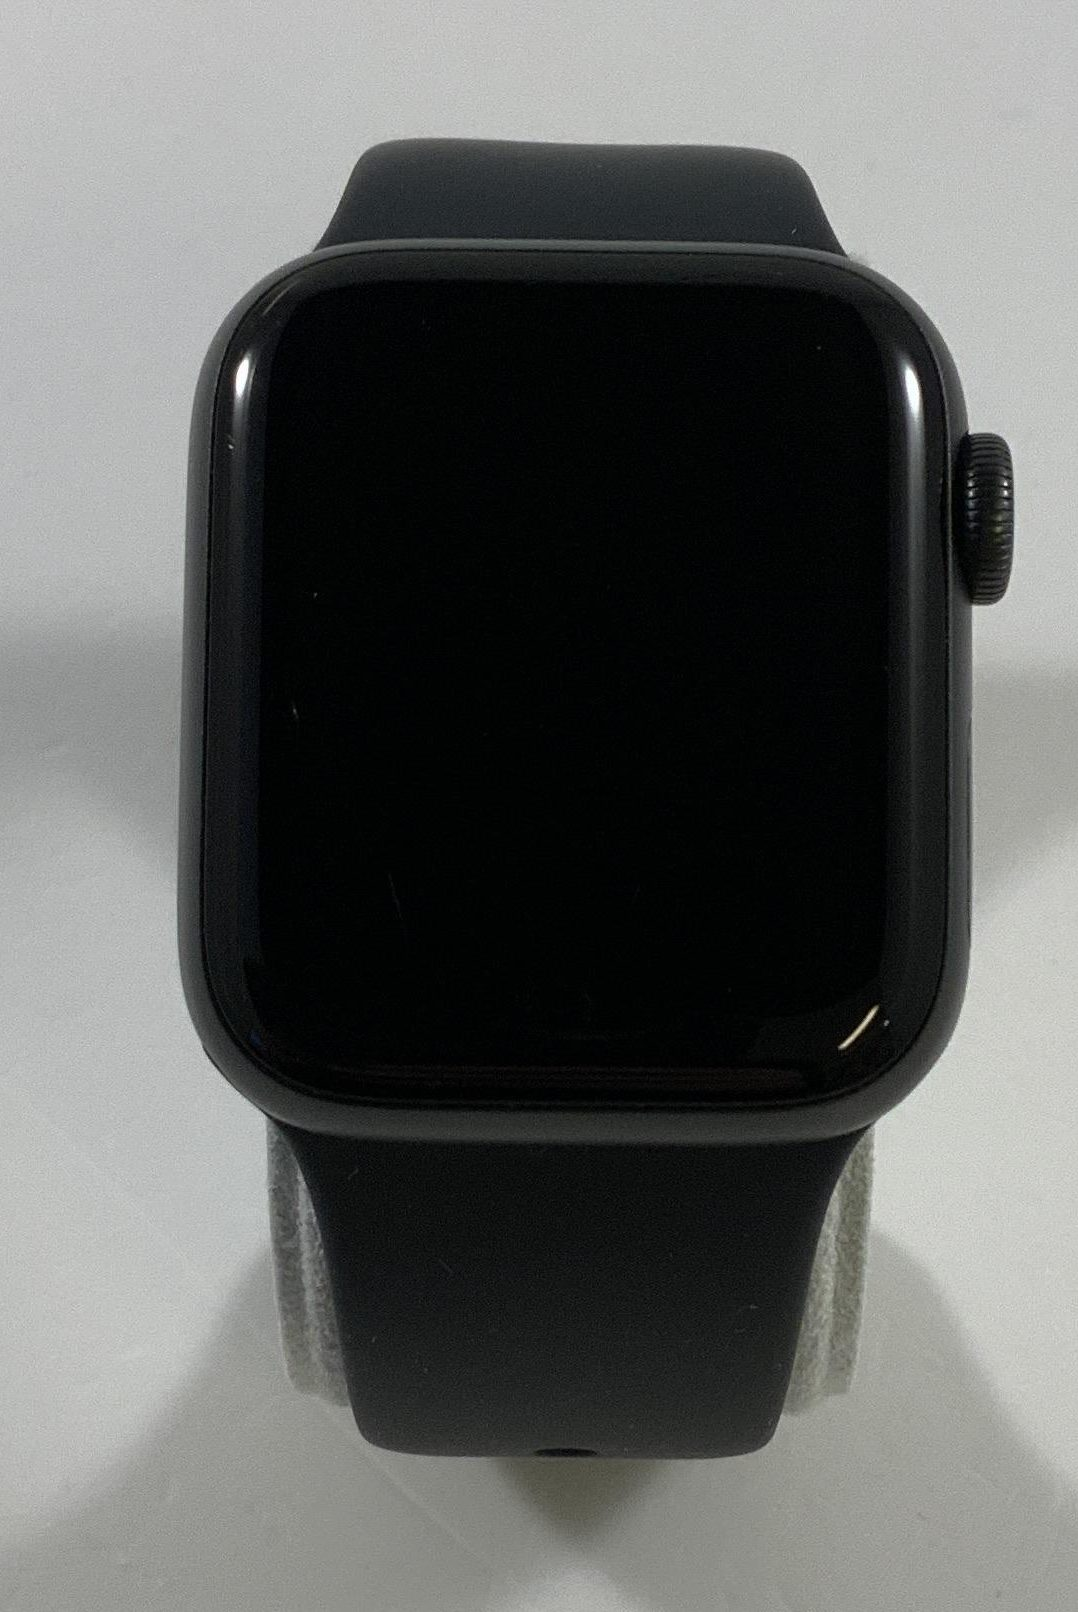 Watch Series 5 Aluminum (40mm), Space Gray, image 1